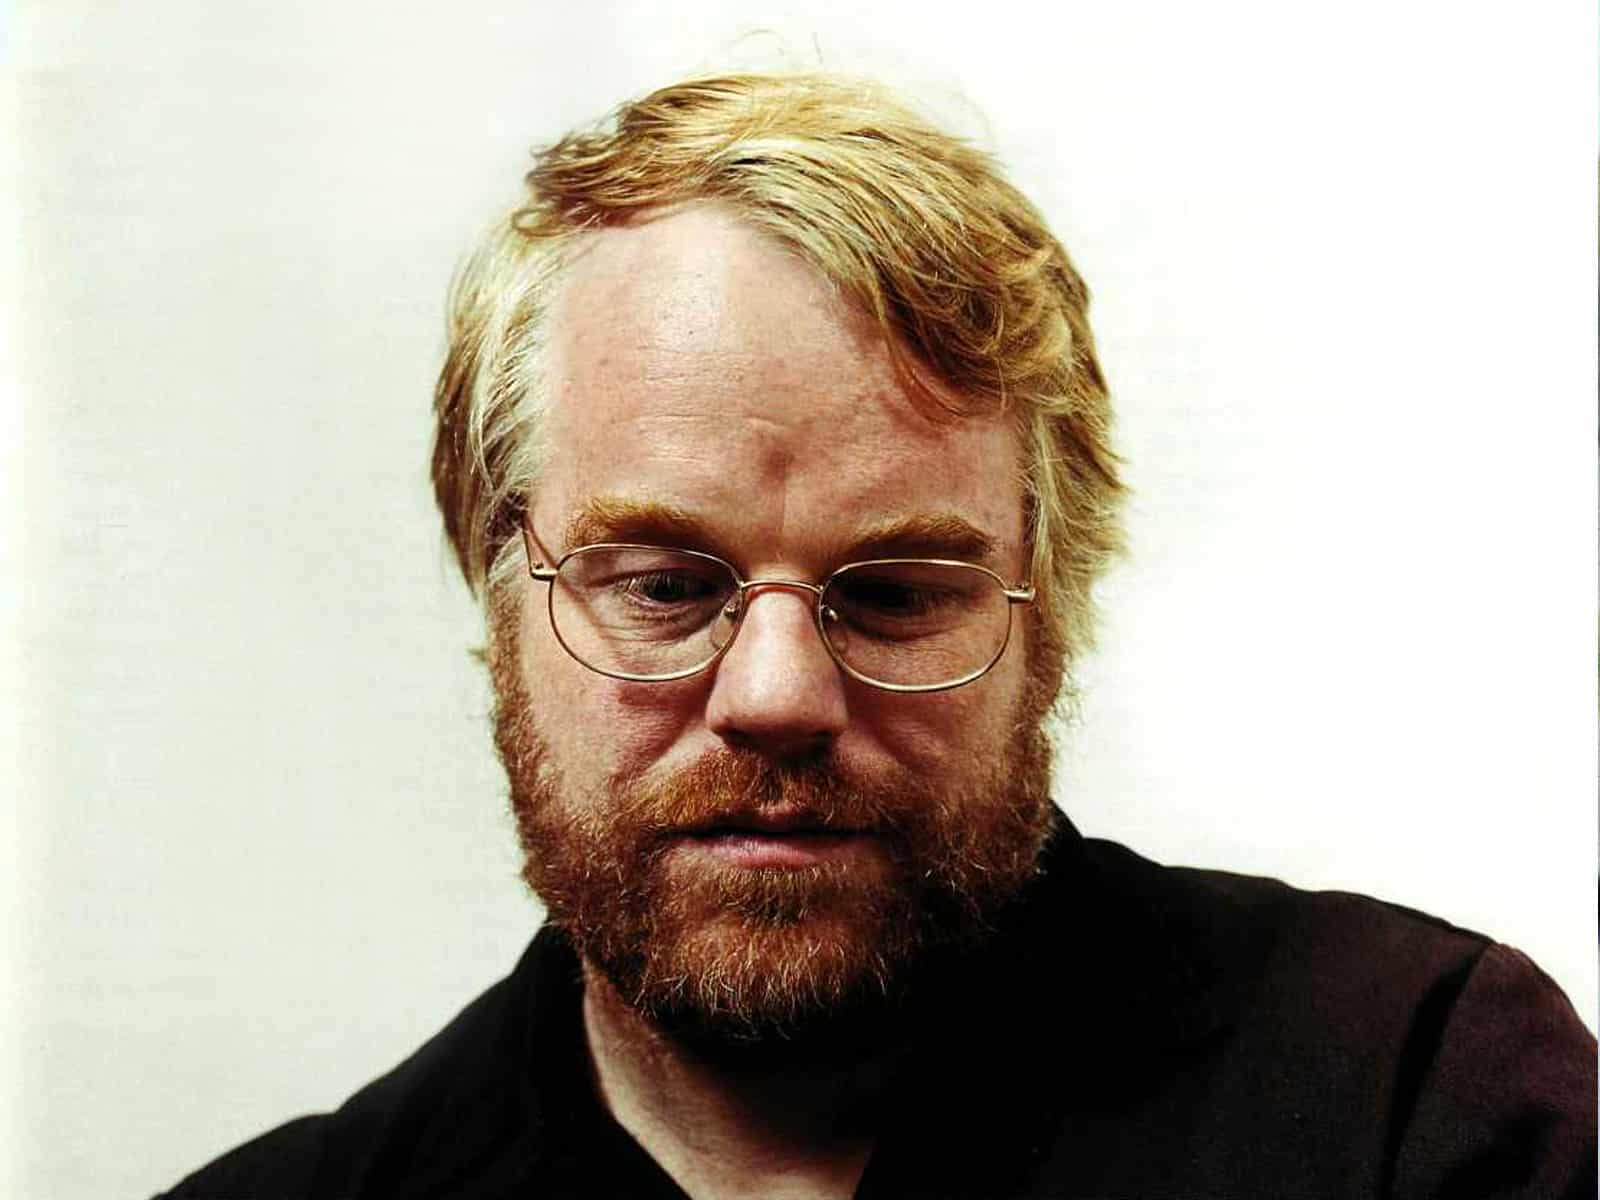 Remembering Philip Seymour Hoffman - Freedom From Addiction